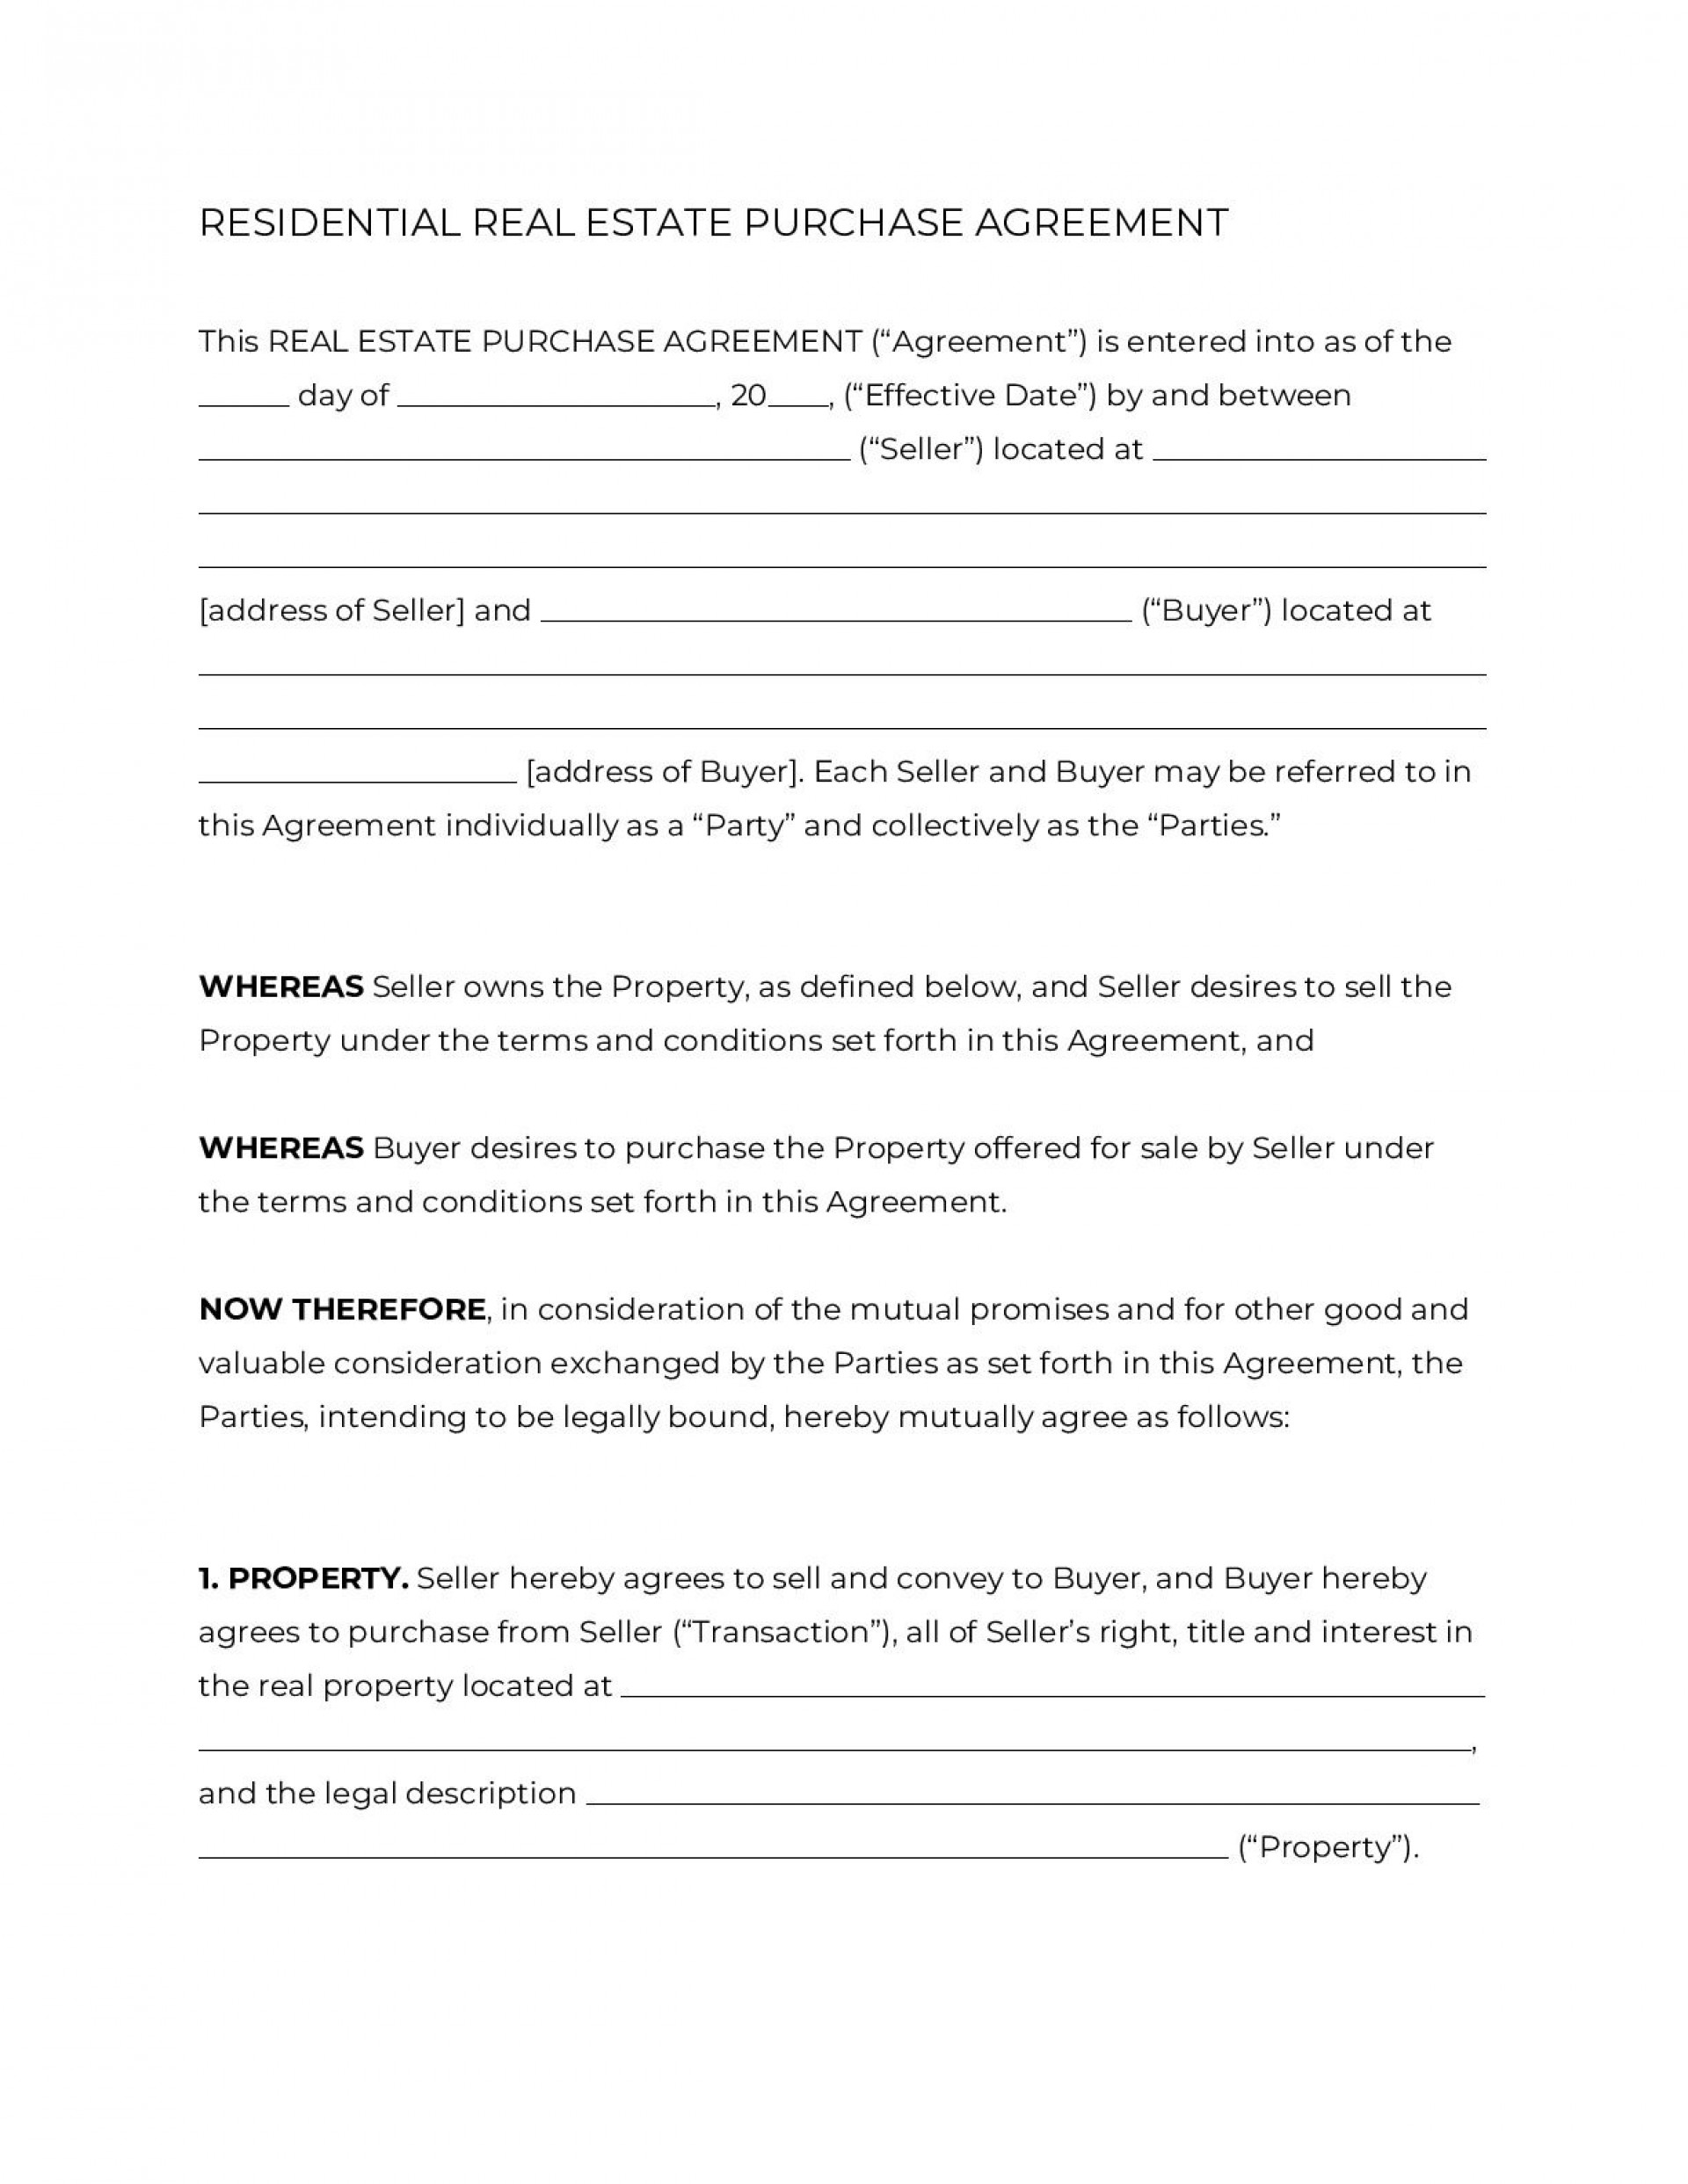 007 Singular Real Estate Purchase Contract Form California High Definition  Agreement Free Sale1920